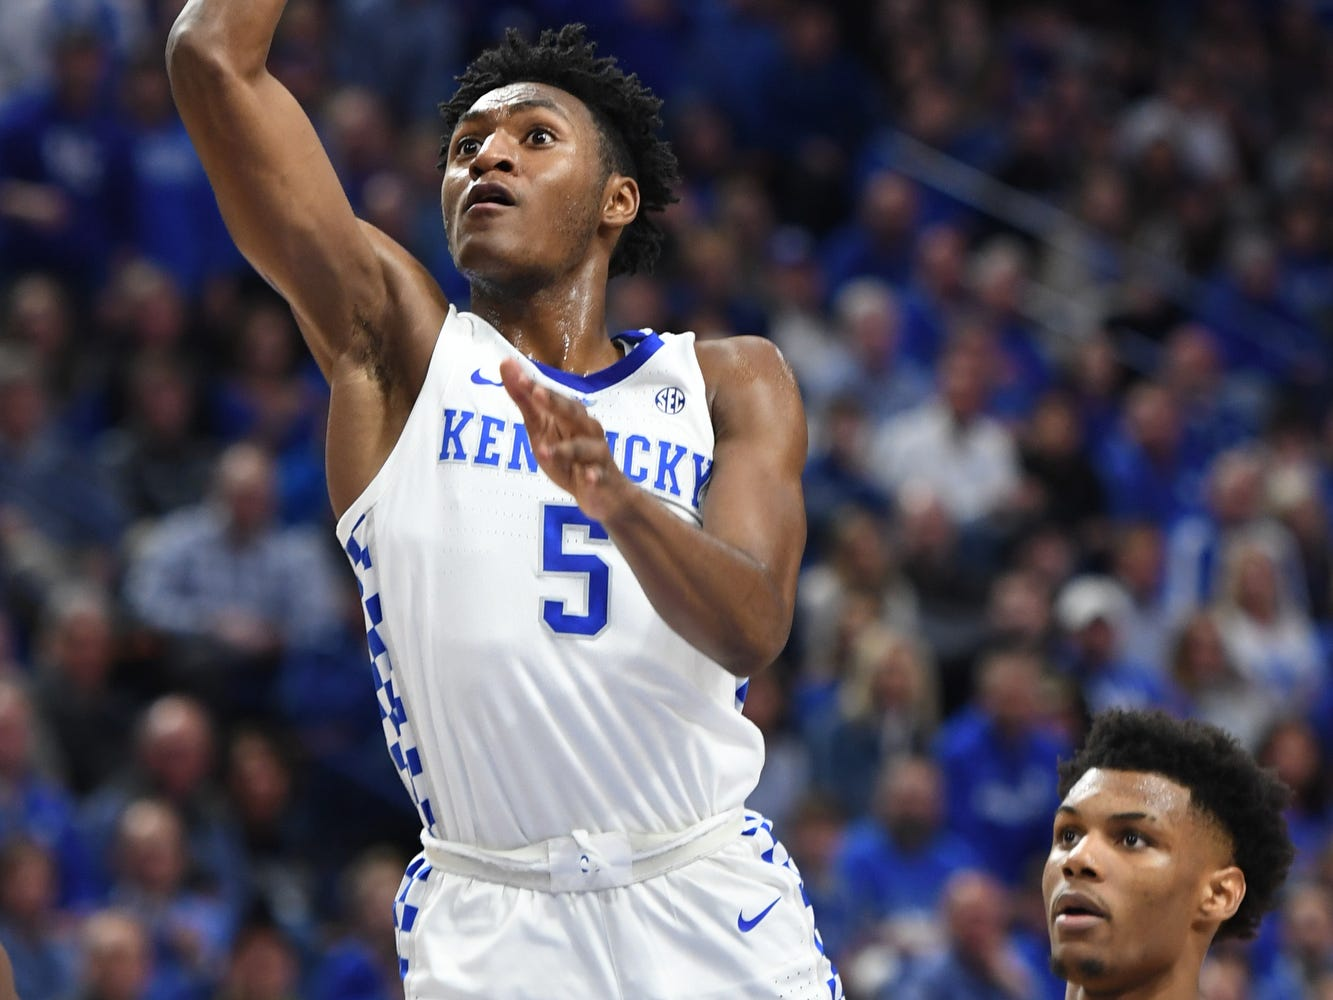 UK G Immanuel Quickley puts up the ball during the University of Kentucky men's basketball game against Louisiana State University at Rupp Arena on Feb. 12, 2018.